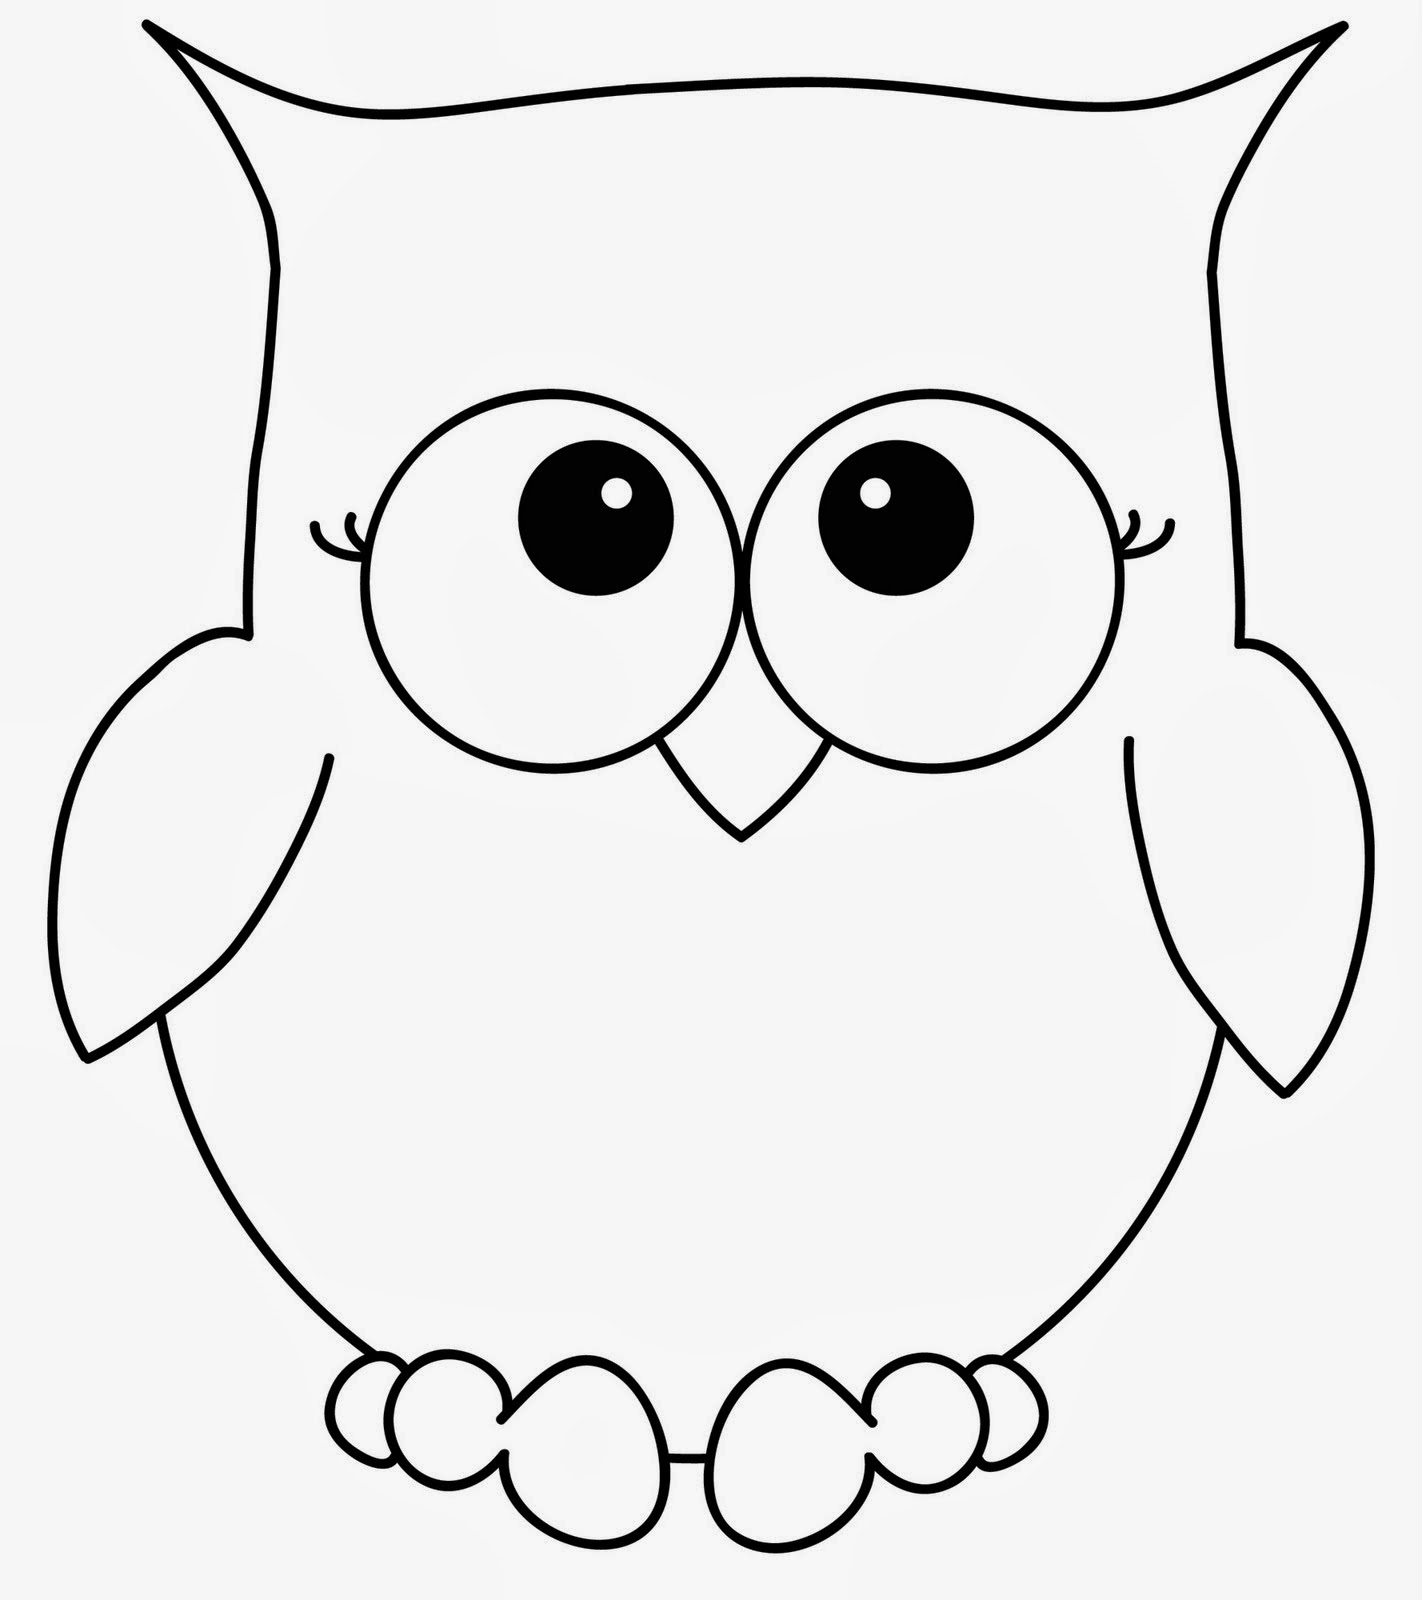 easy cute owl coloring pages crealo tu owls drawing cartoon owl drawing pages coloring cute easy owl